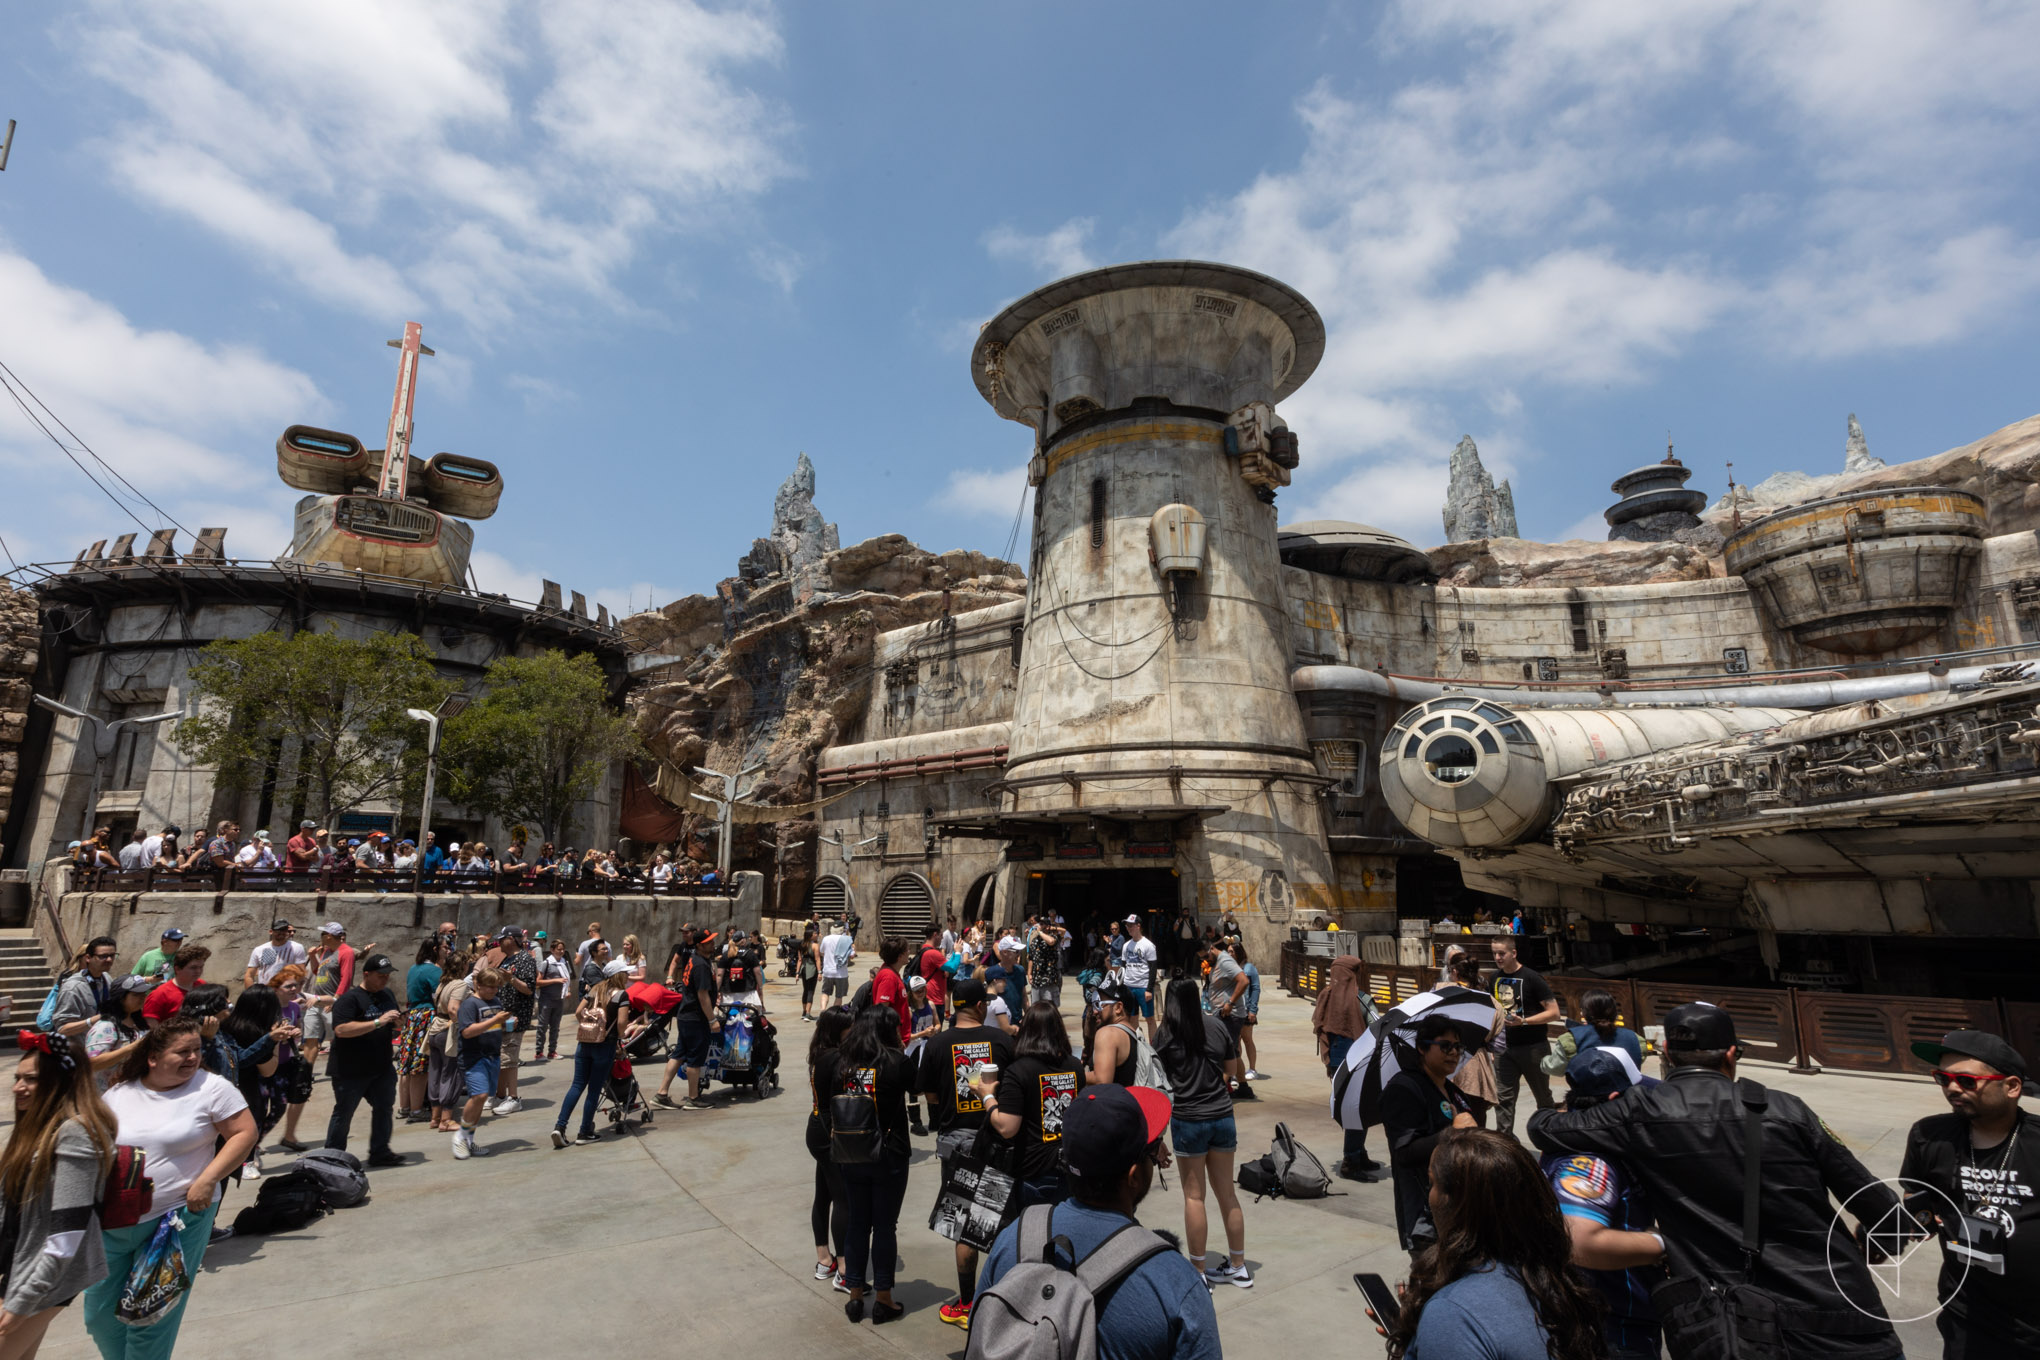 Here's what the crowds and lines were like at Star Wars Land's opening day